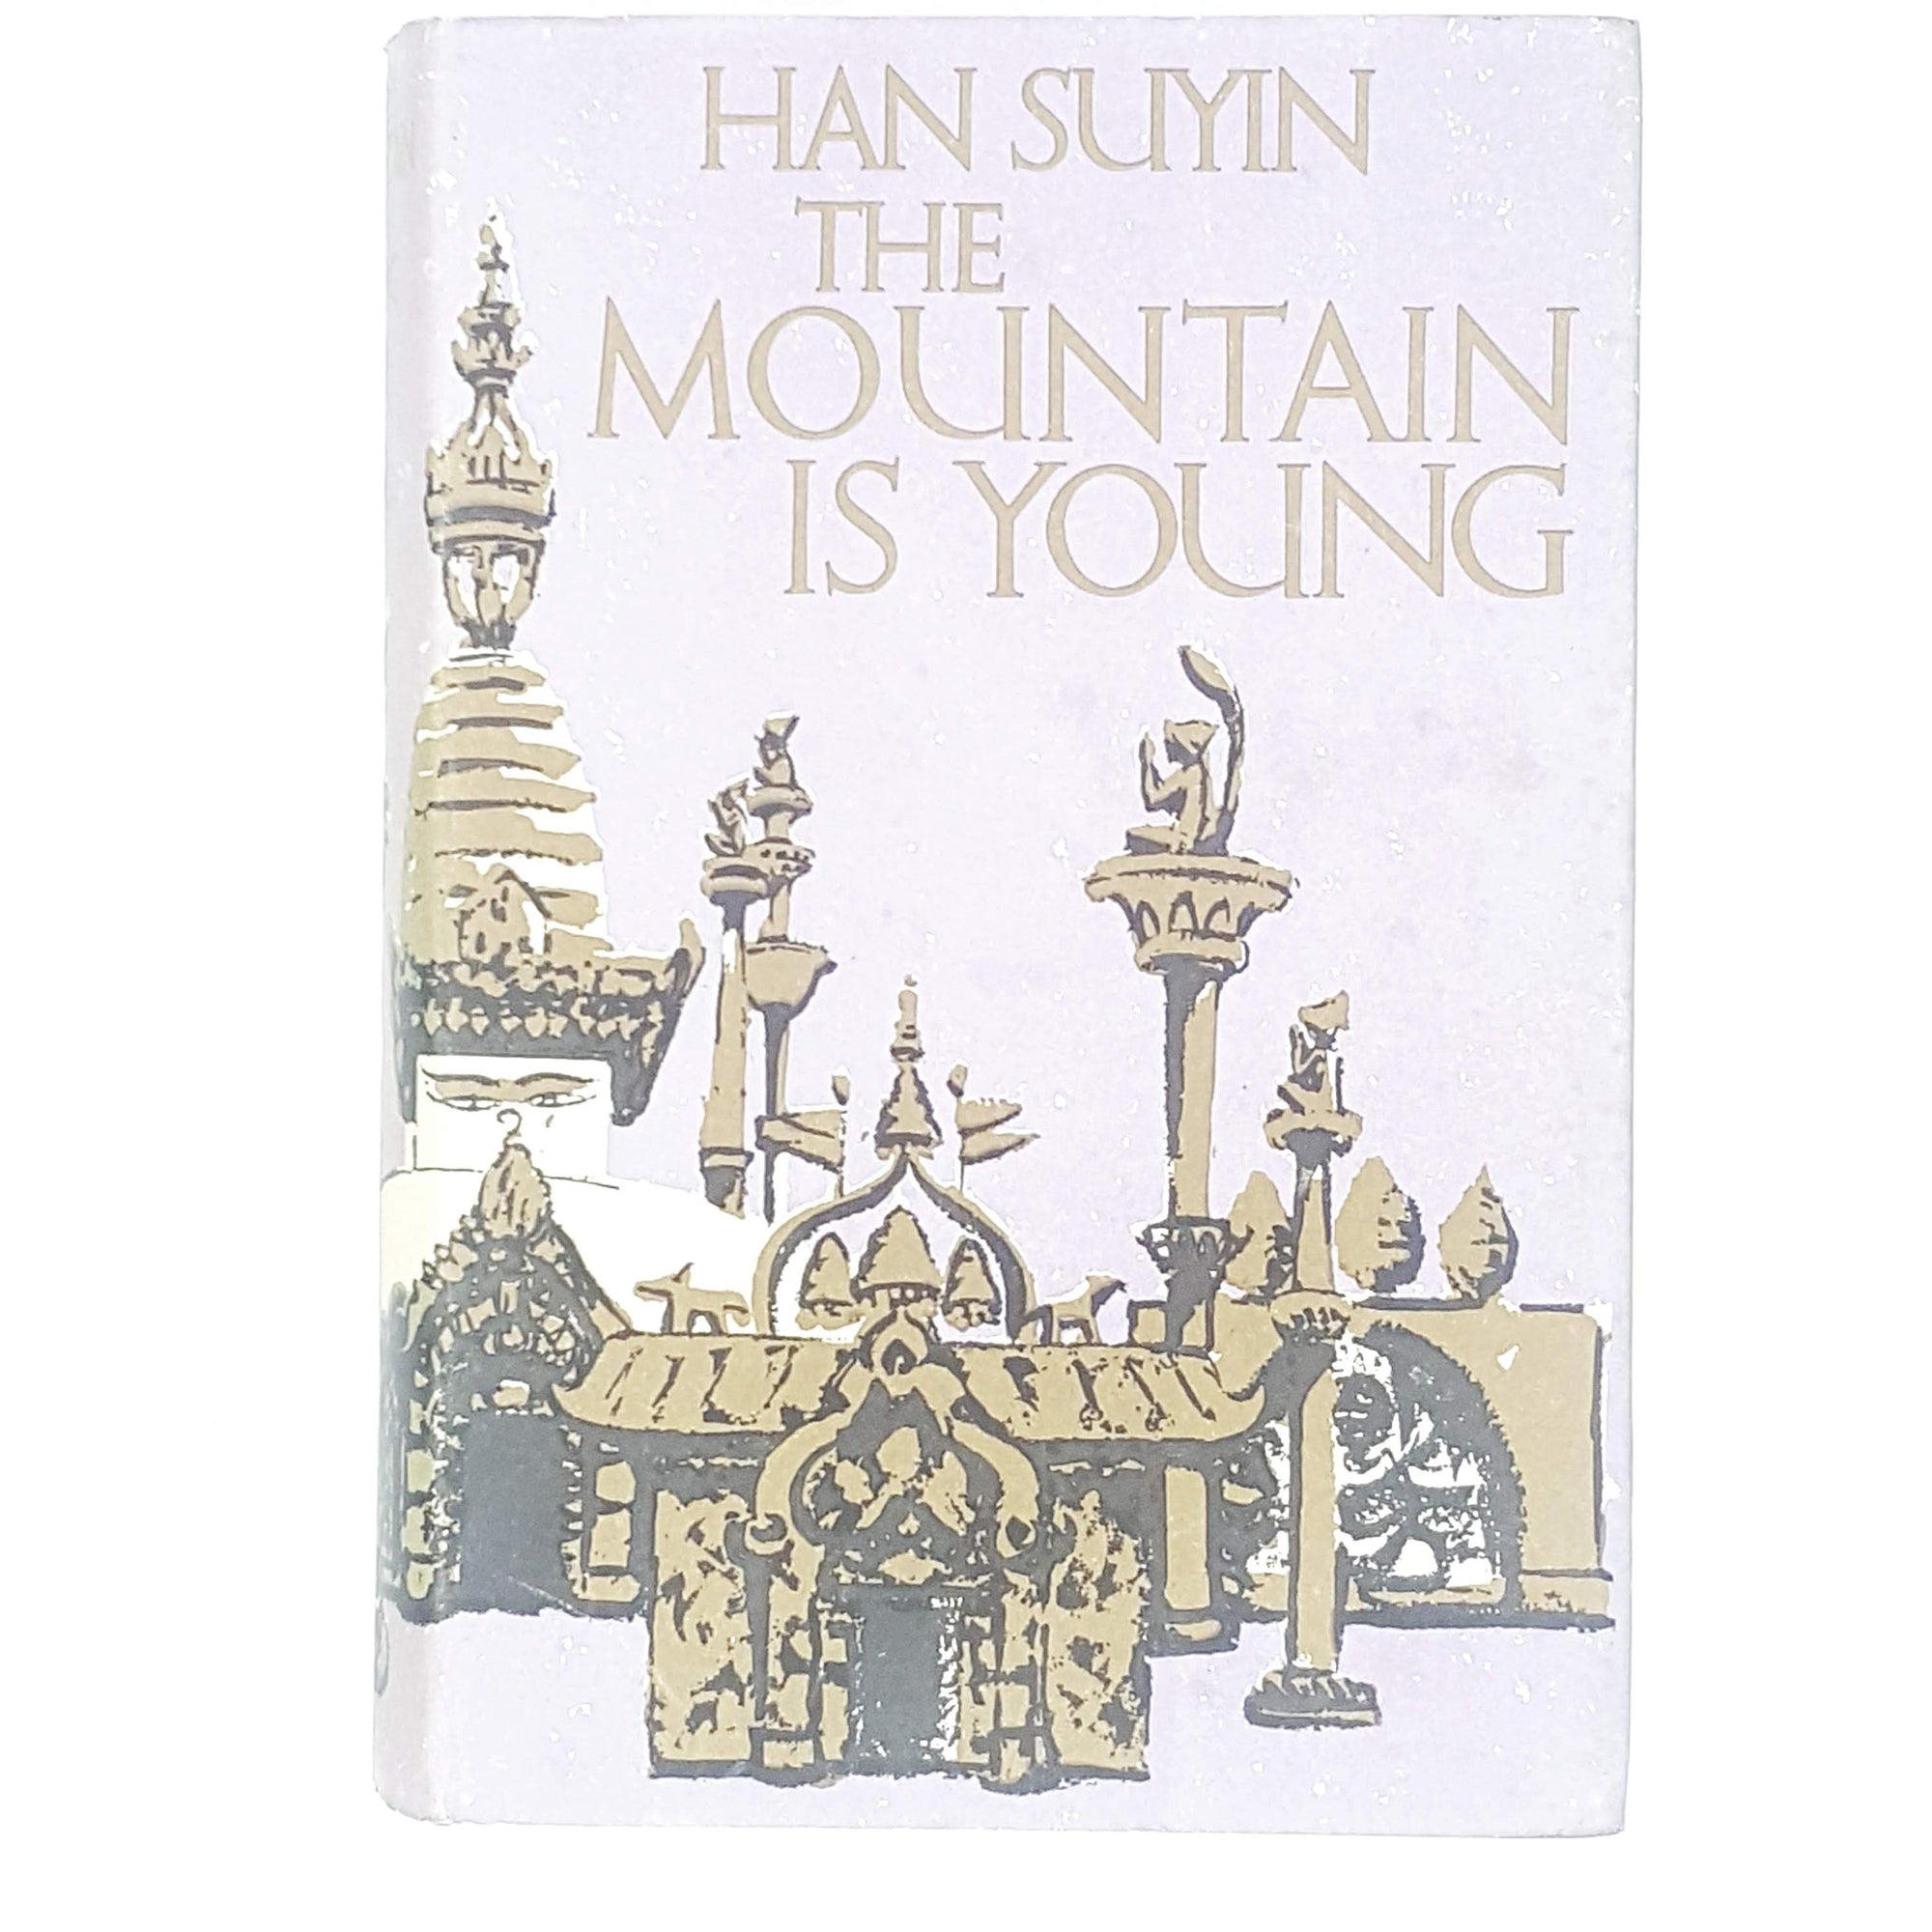 The Mountain is Young by Han Suyin